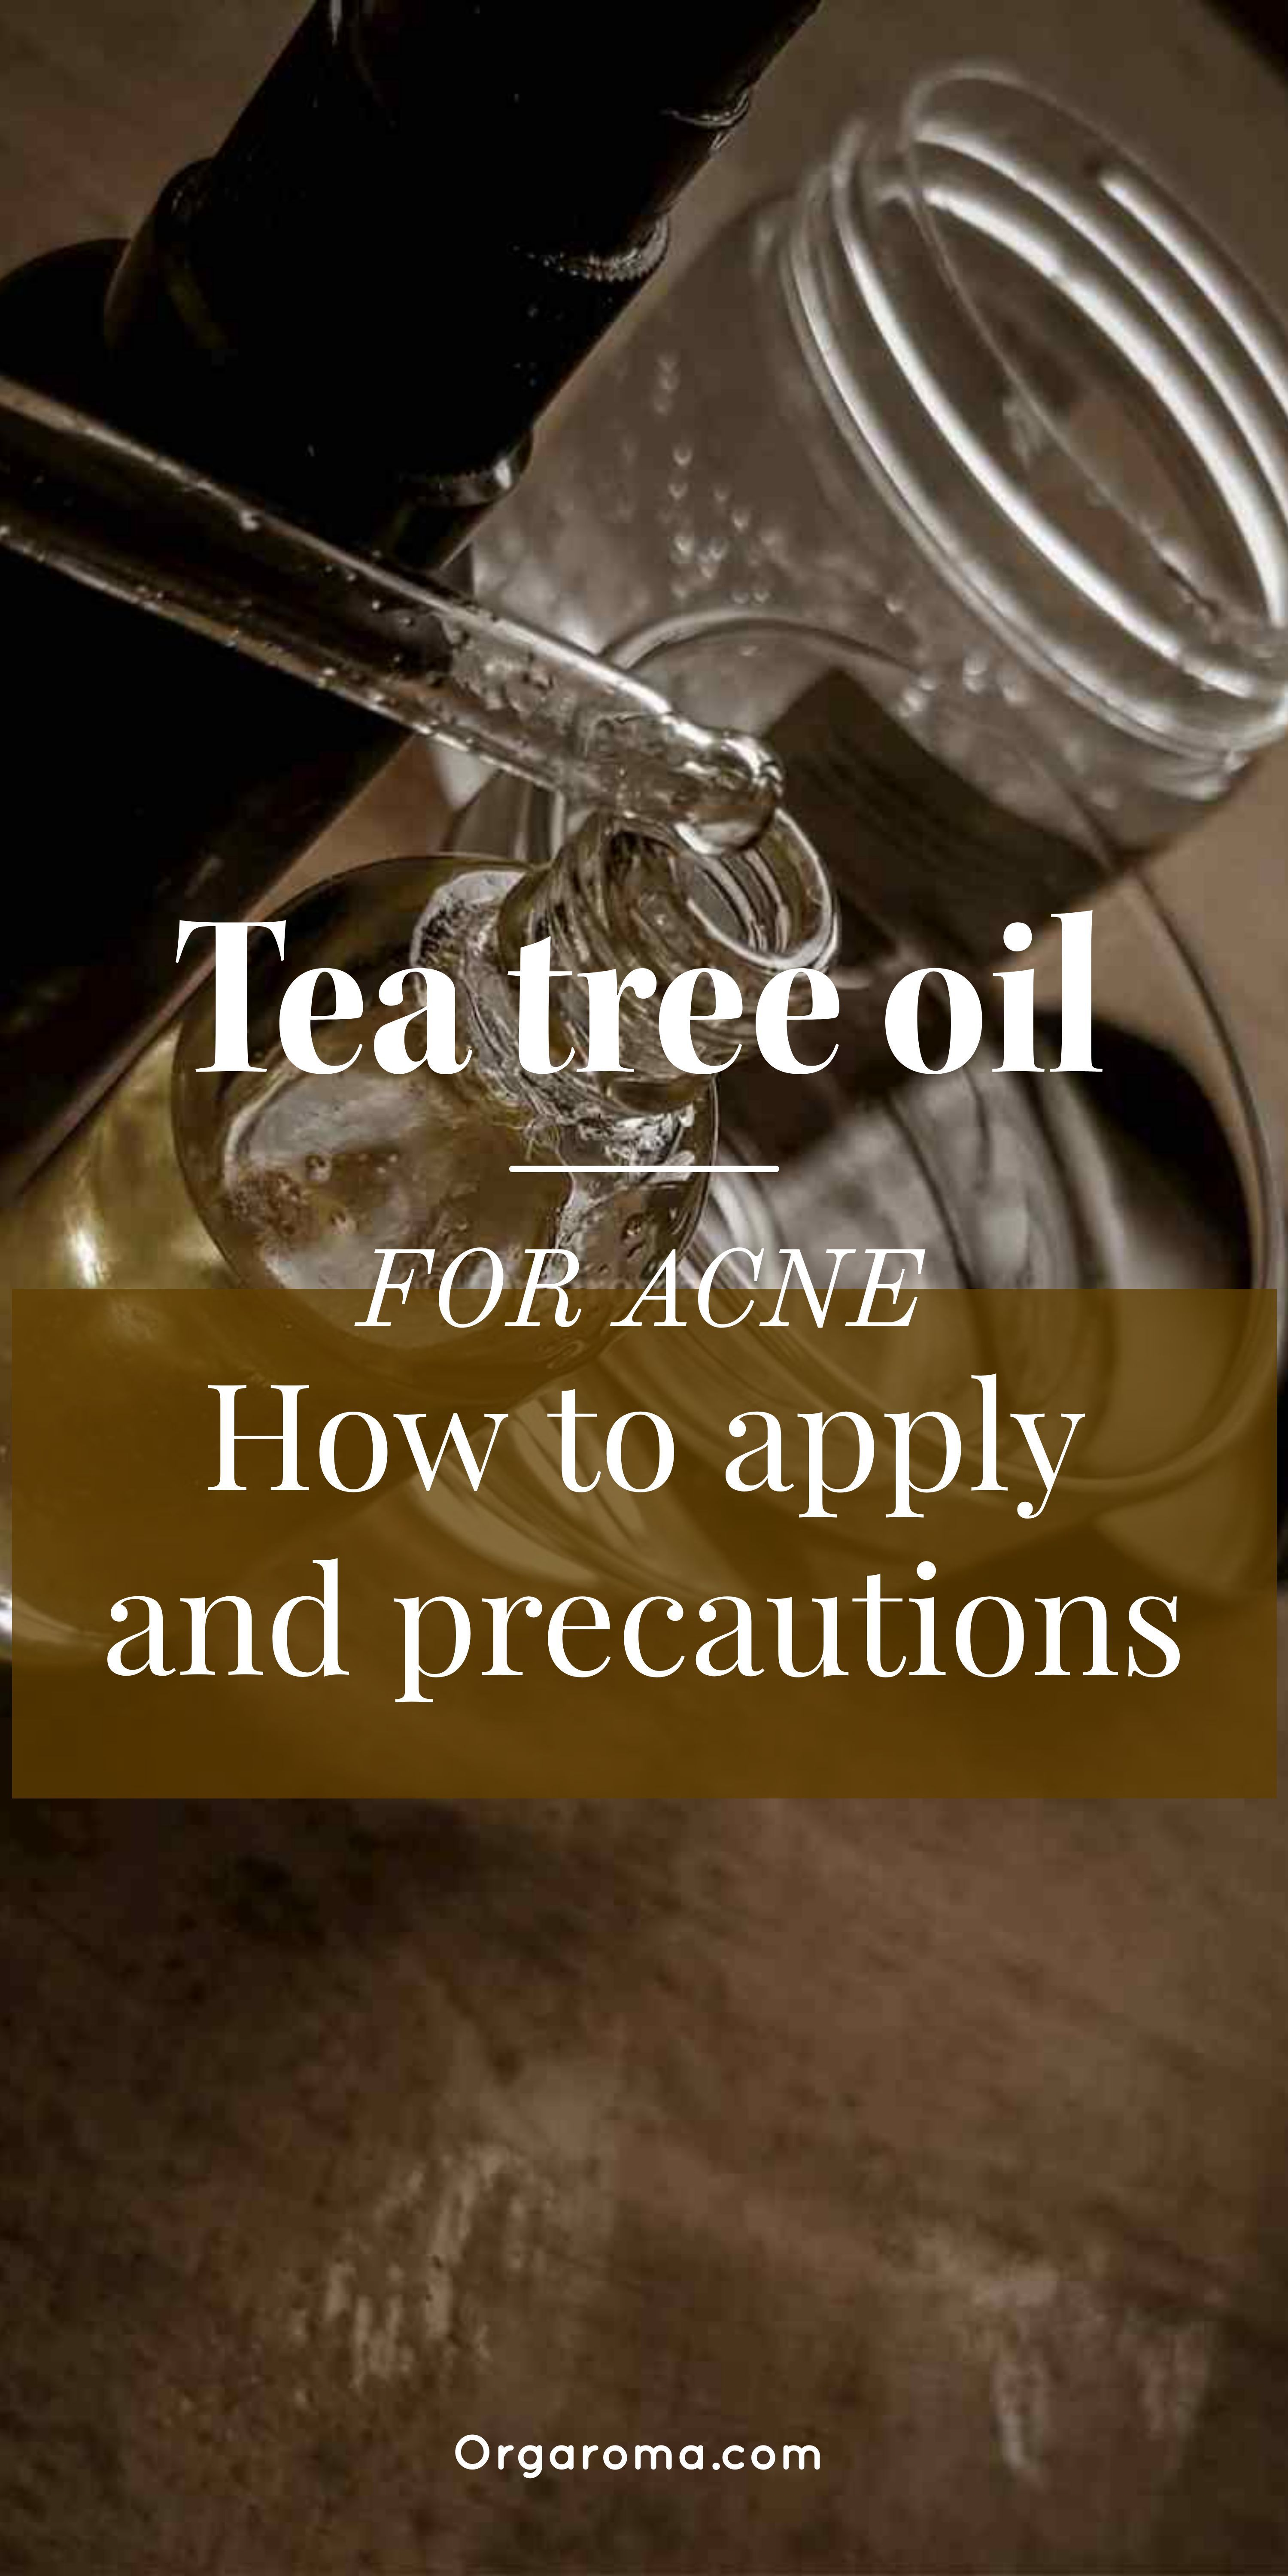 Soda and acne baking oil tea tree for How To